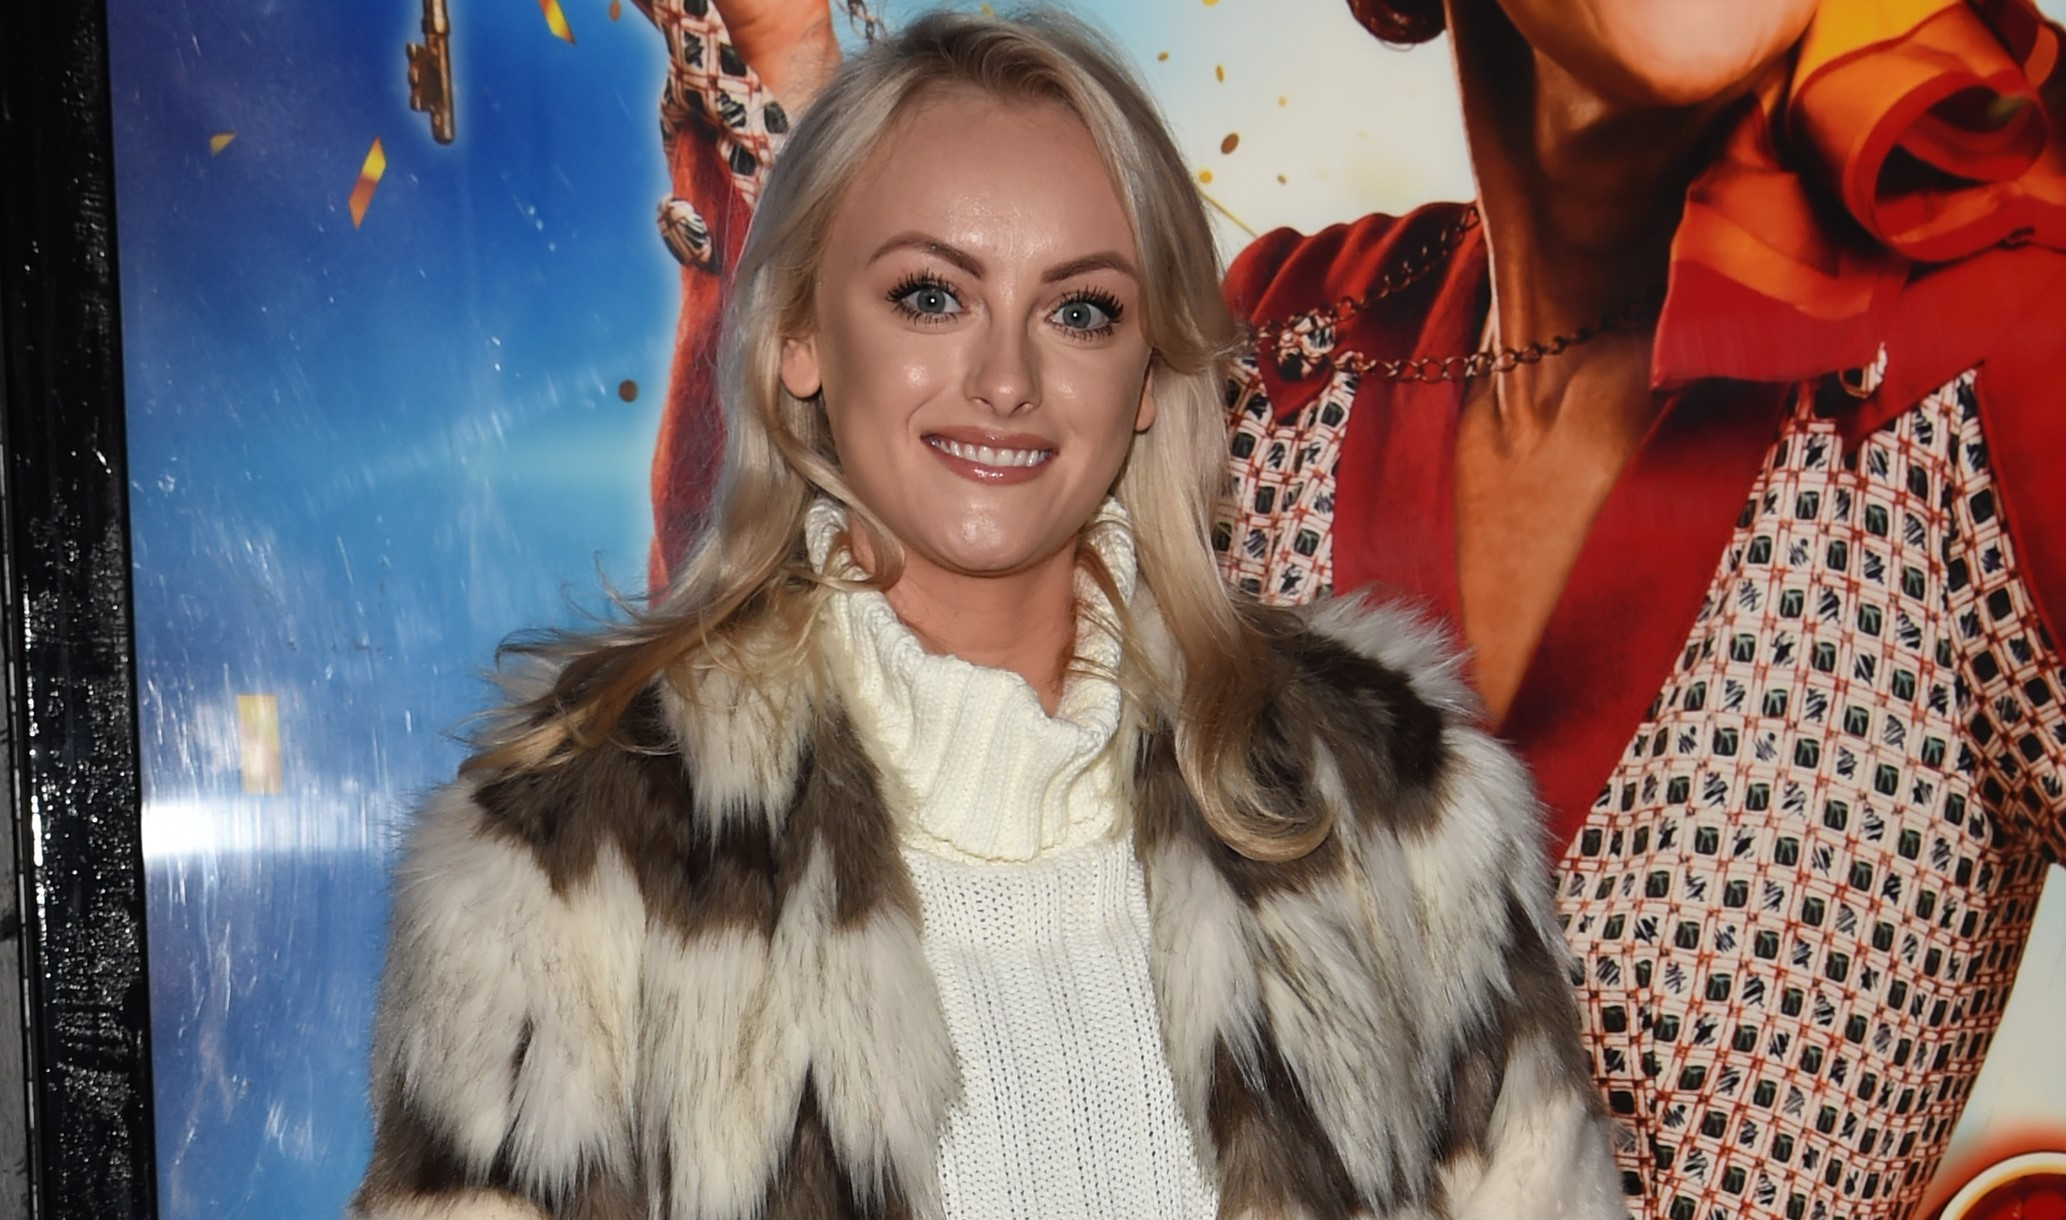 10 facts about Katie McGlynn - the actress who plays Sinead Tinker